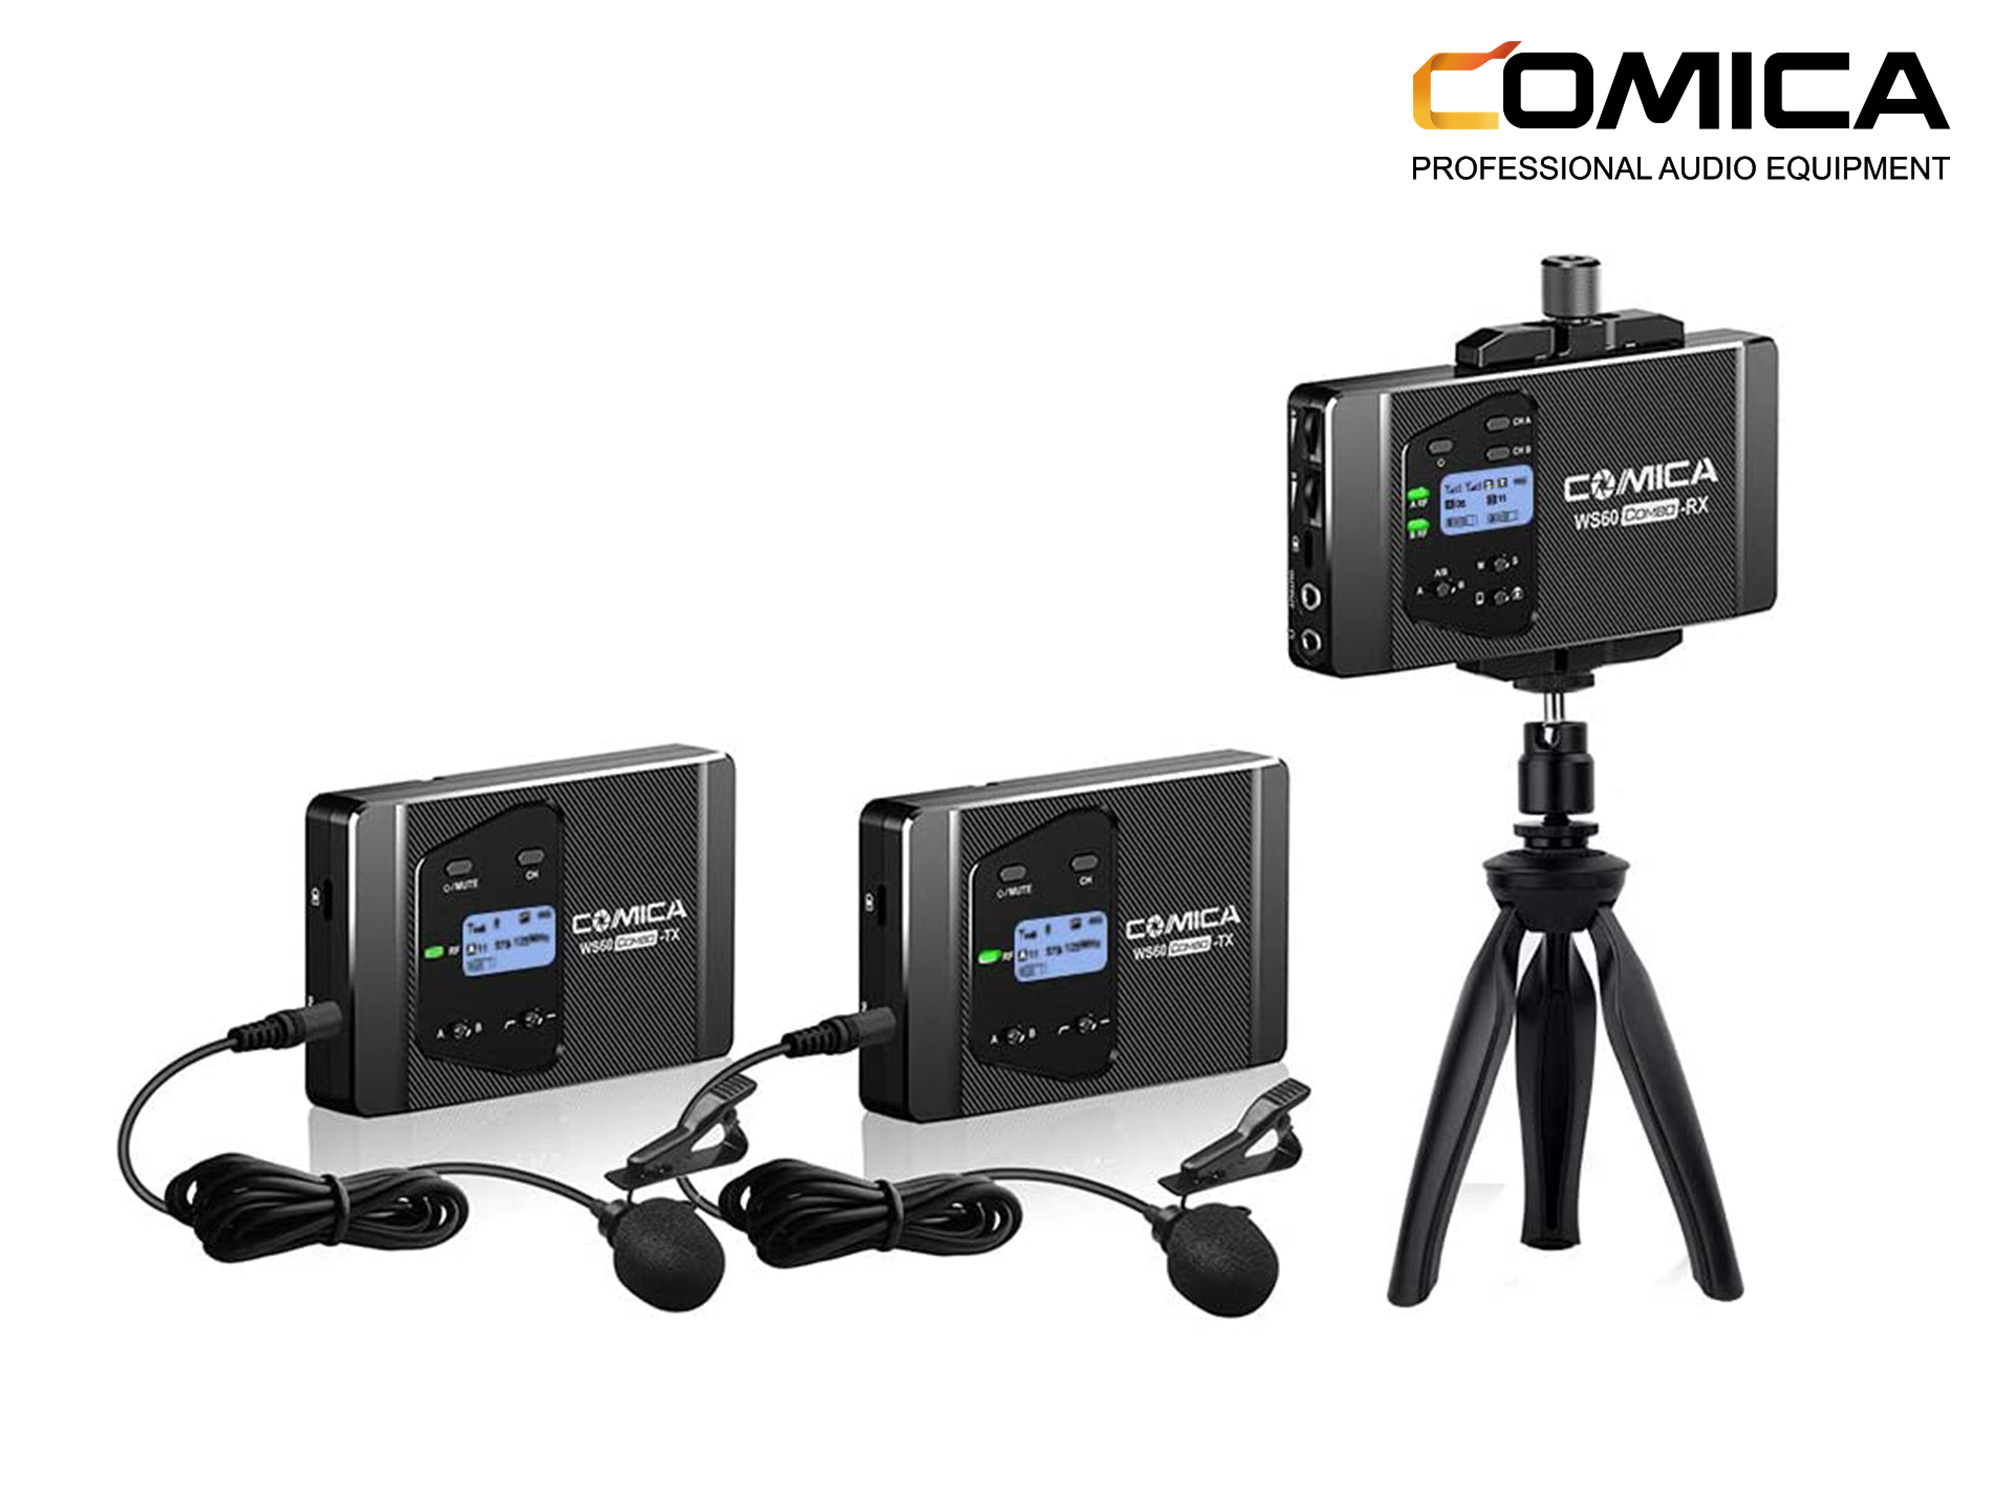 Comica Audio CVM-WS60 COMBO 2-Person Wireless Lavalier Microphone System for Smartphones/Cameras